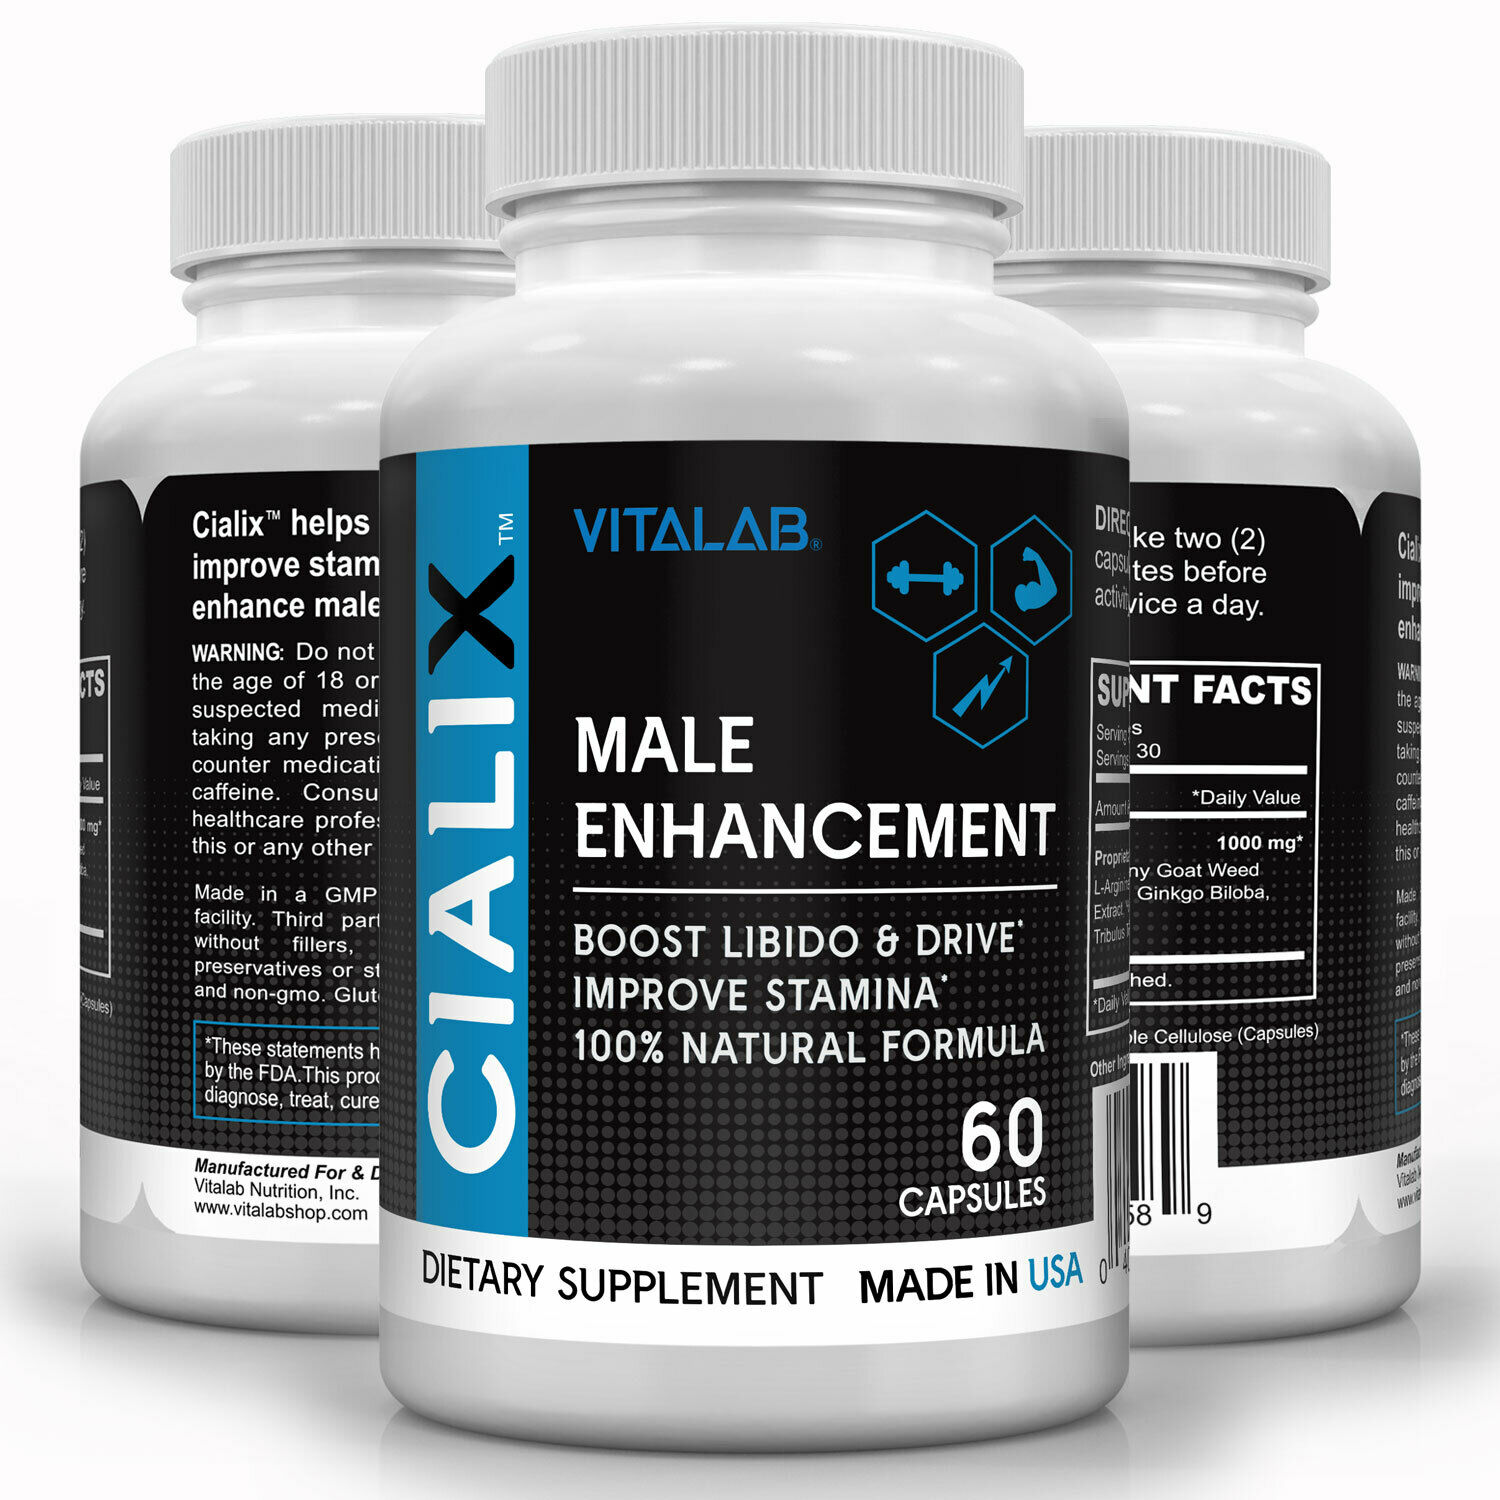 Cialix Male Enhancement Pills Bigger Libido Performance Boost Drive Stamina 60ct 4